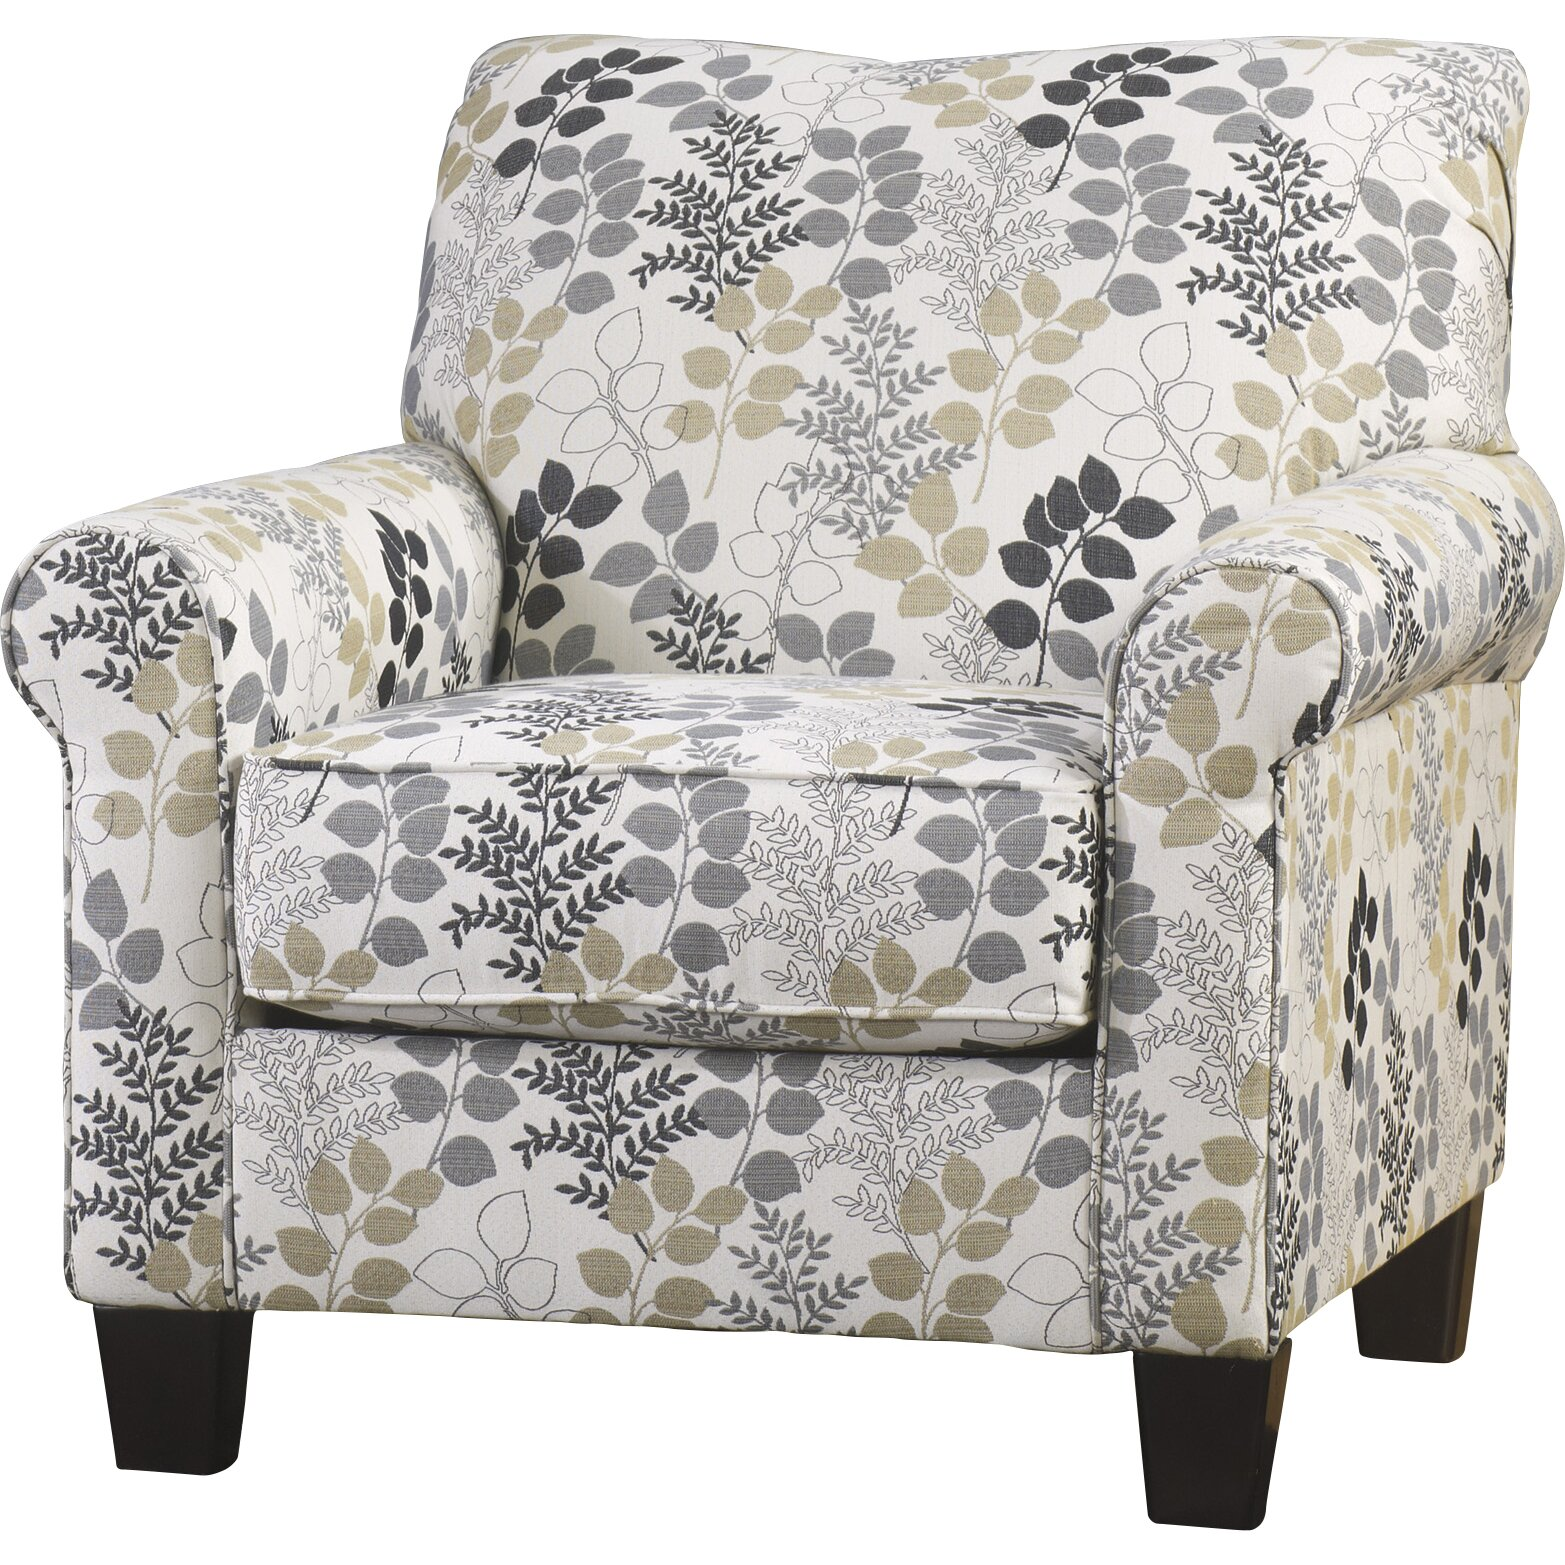 Patterned Chairs Living Room Accent Chairs Youll Love Wayfair